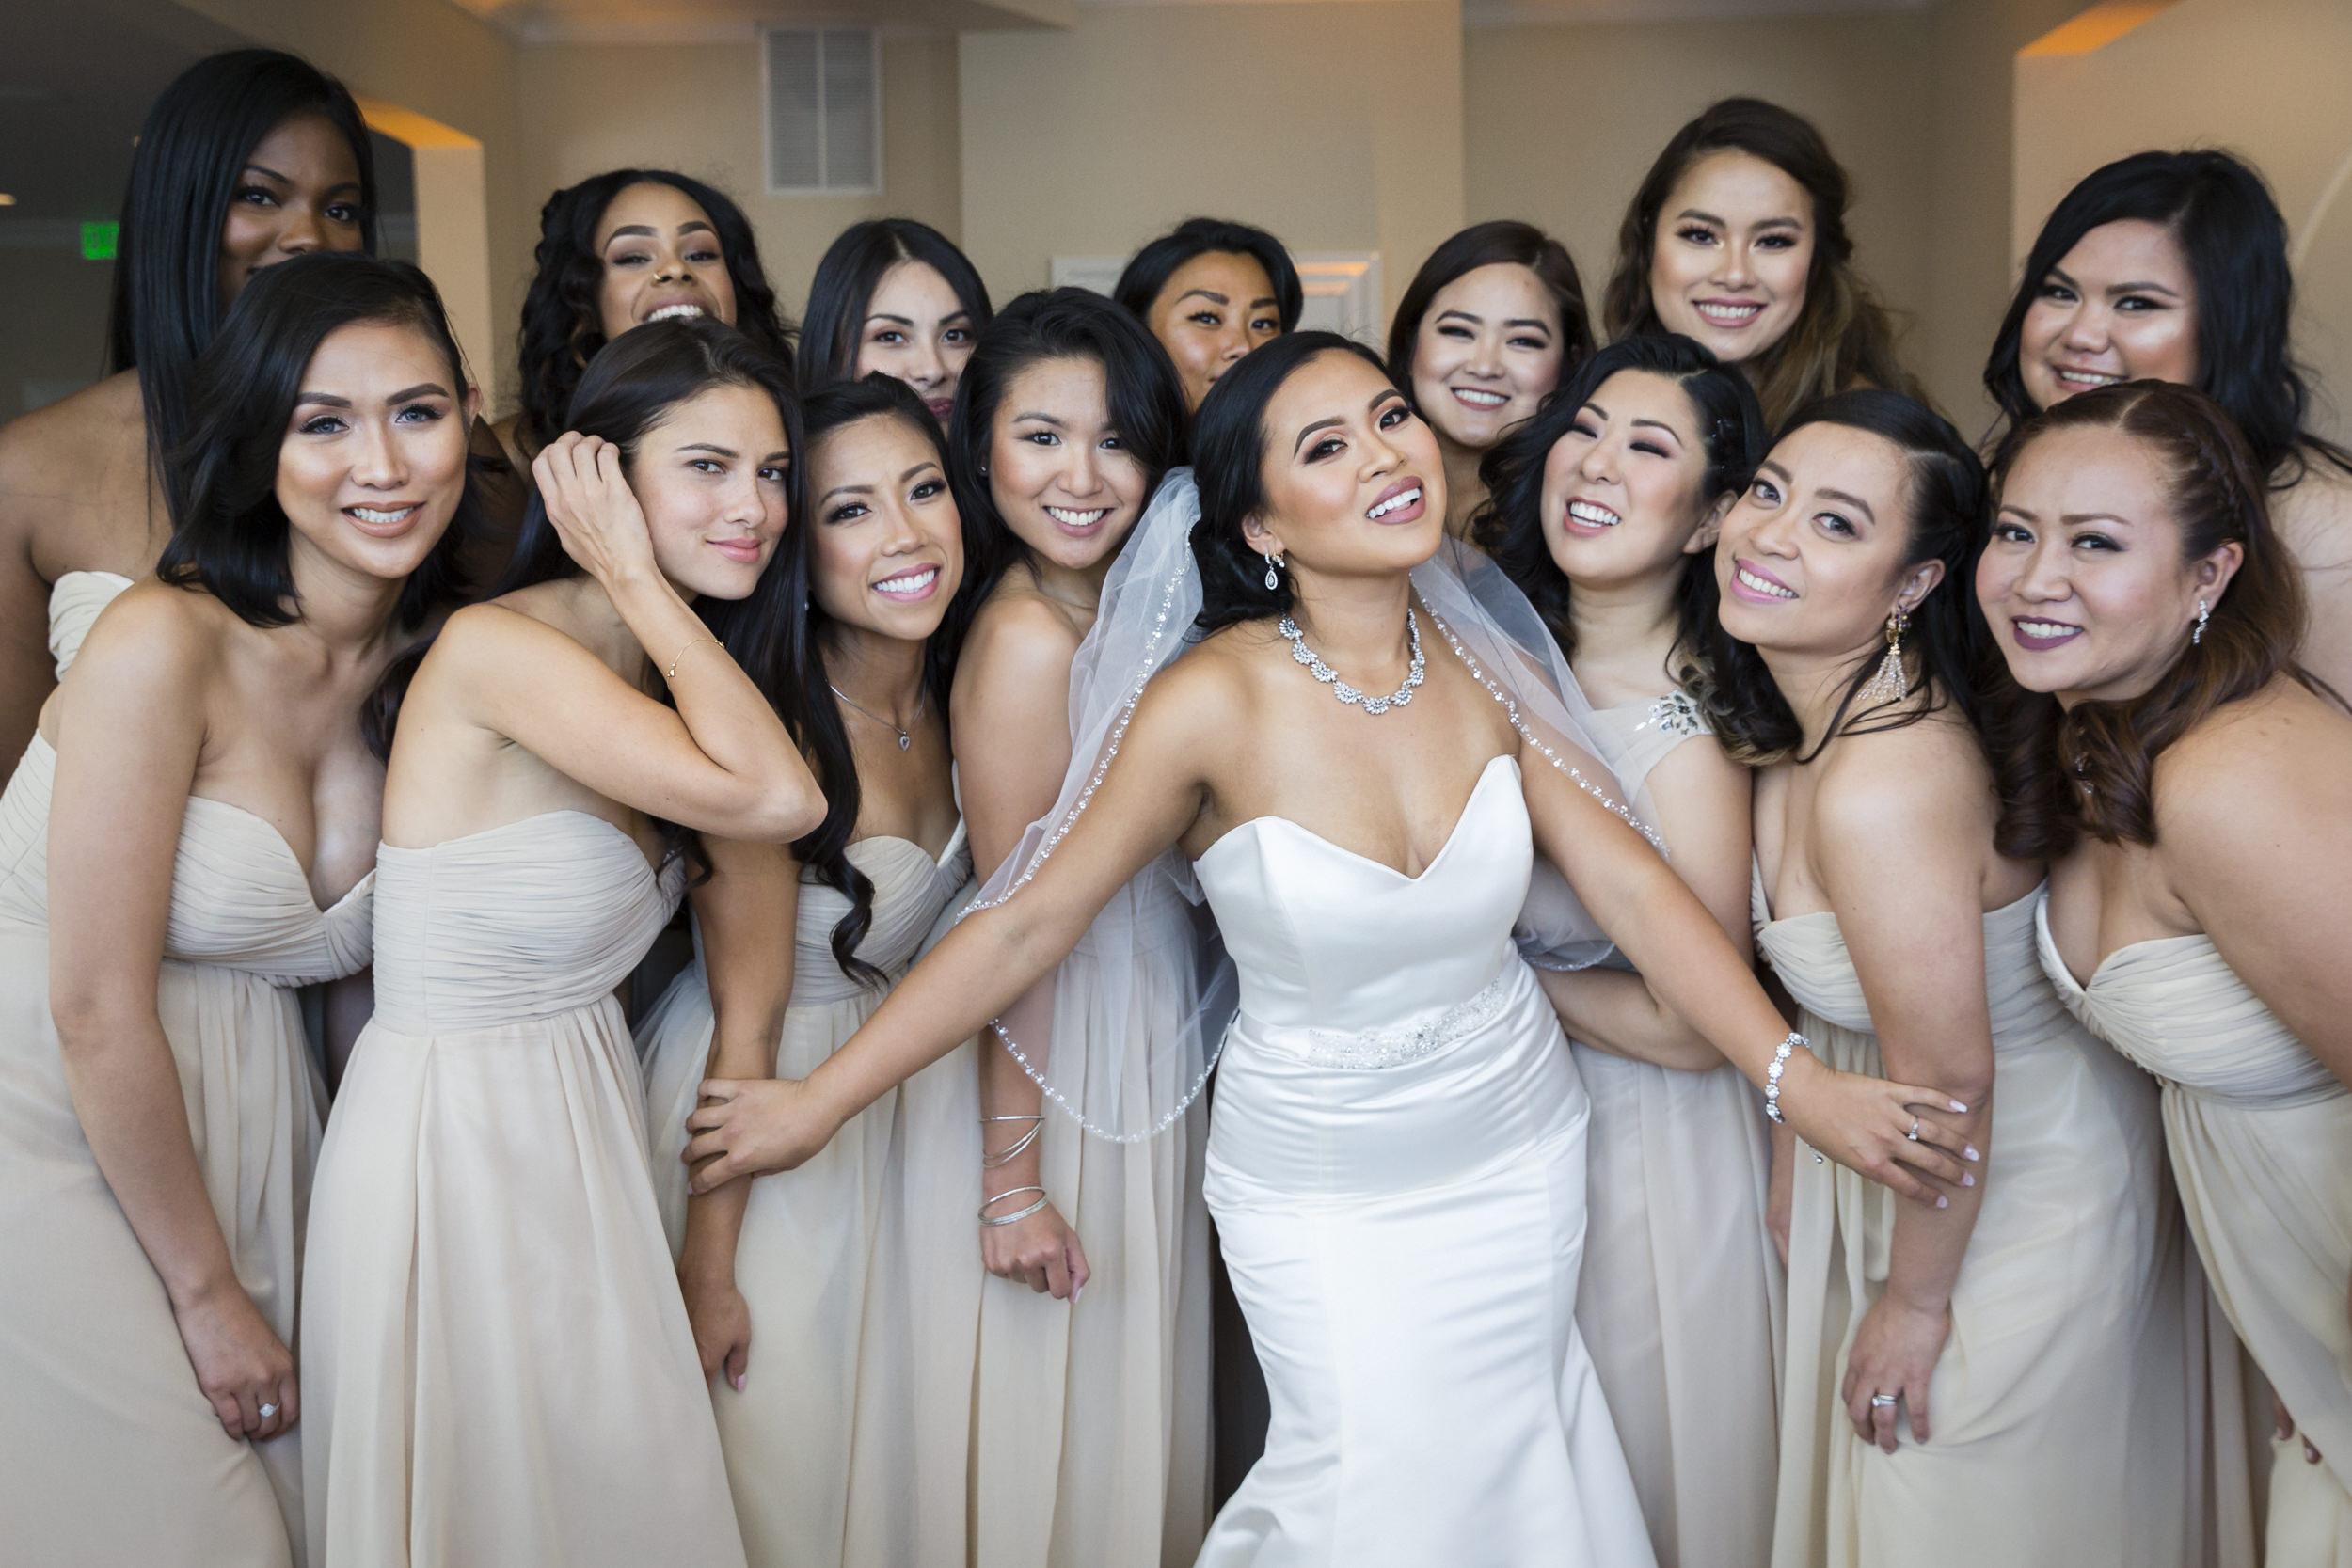 bridal-party-bridesmaids-regina-wedding-day-1.jpg